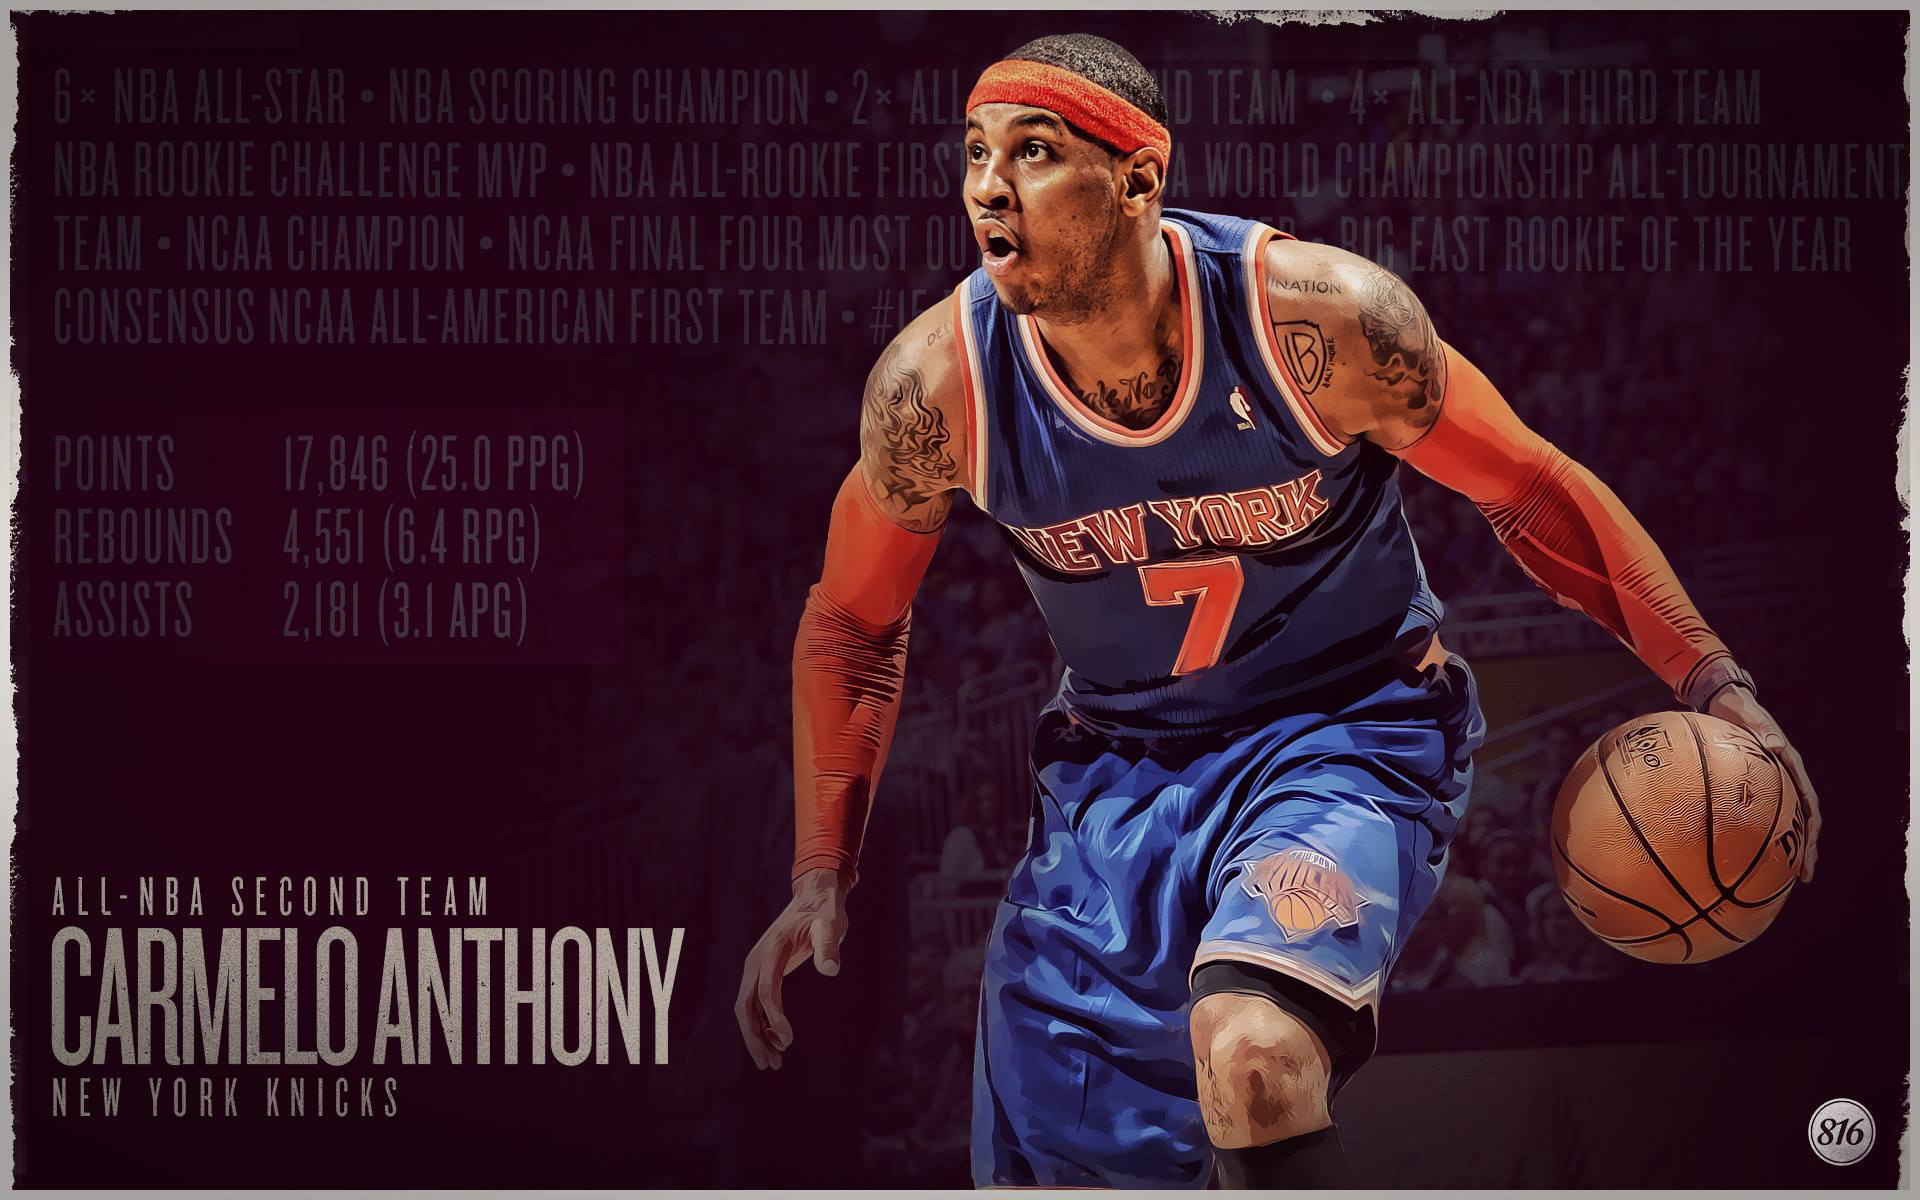 Carmelo Anthony 2013 All-NBA Second Team Wallpaper